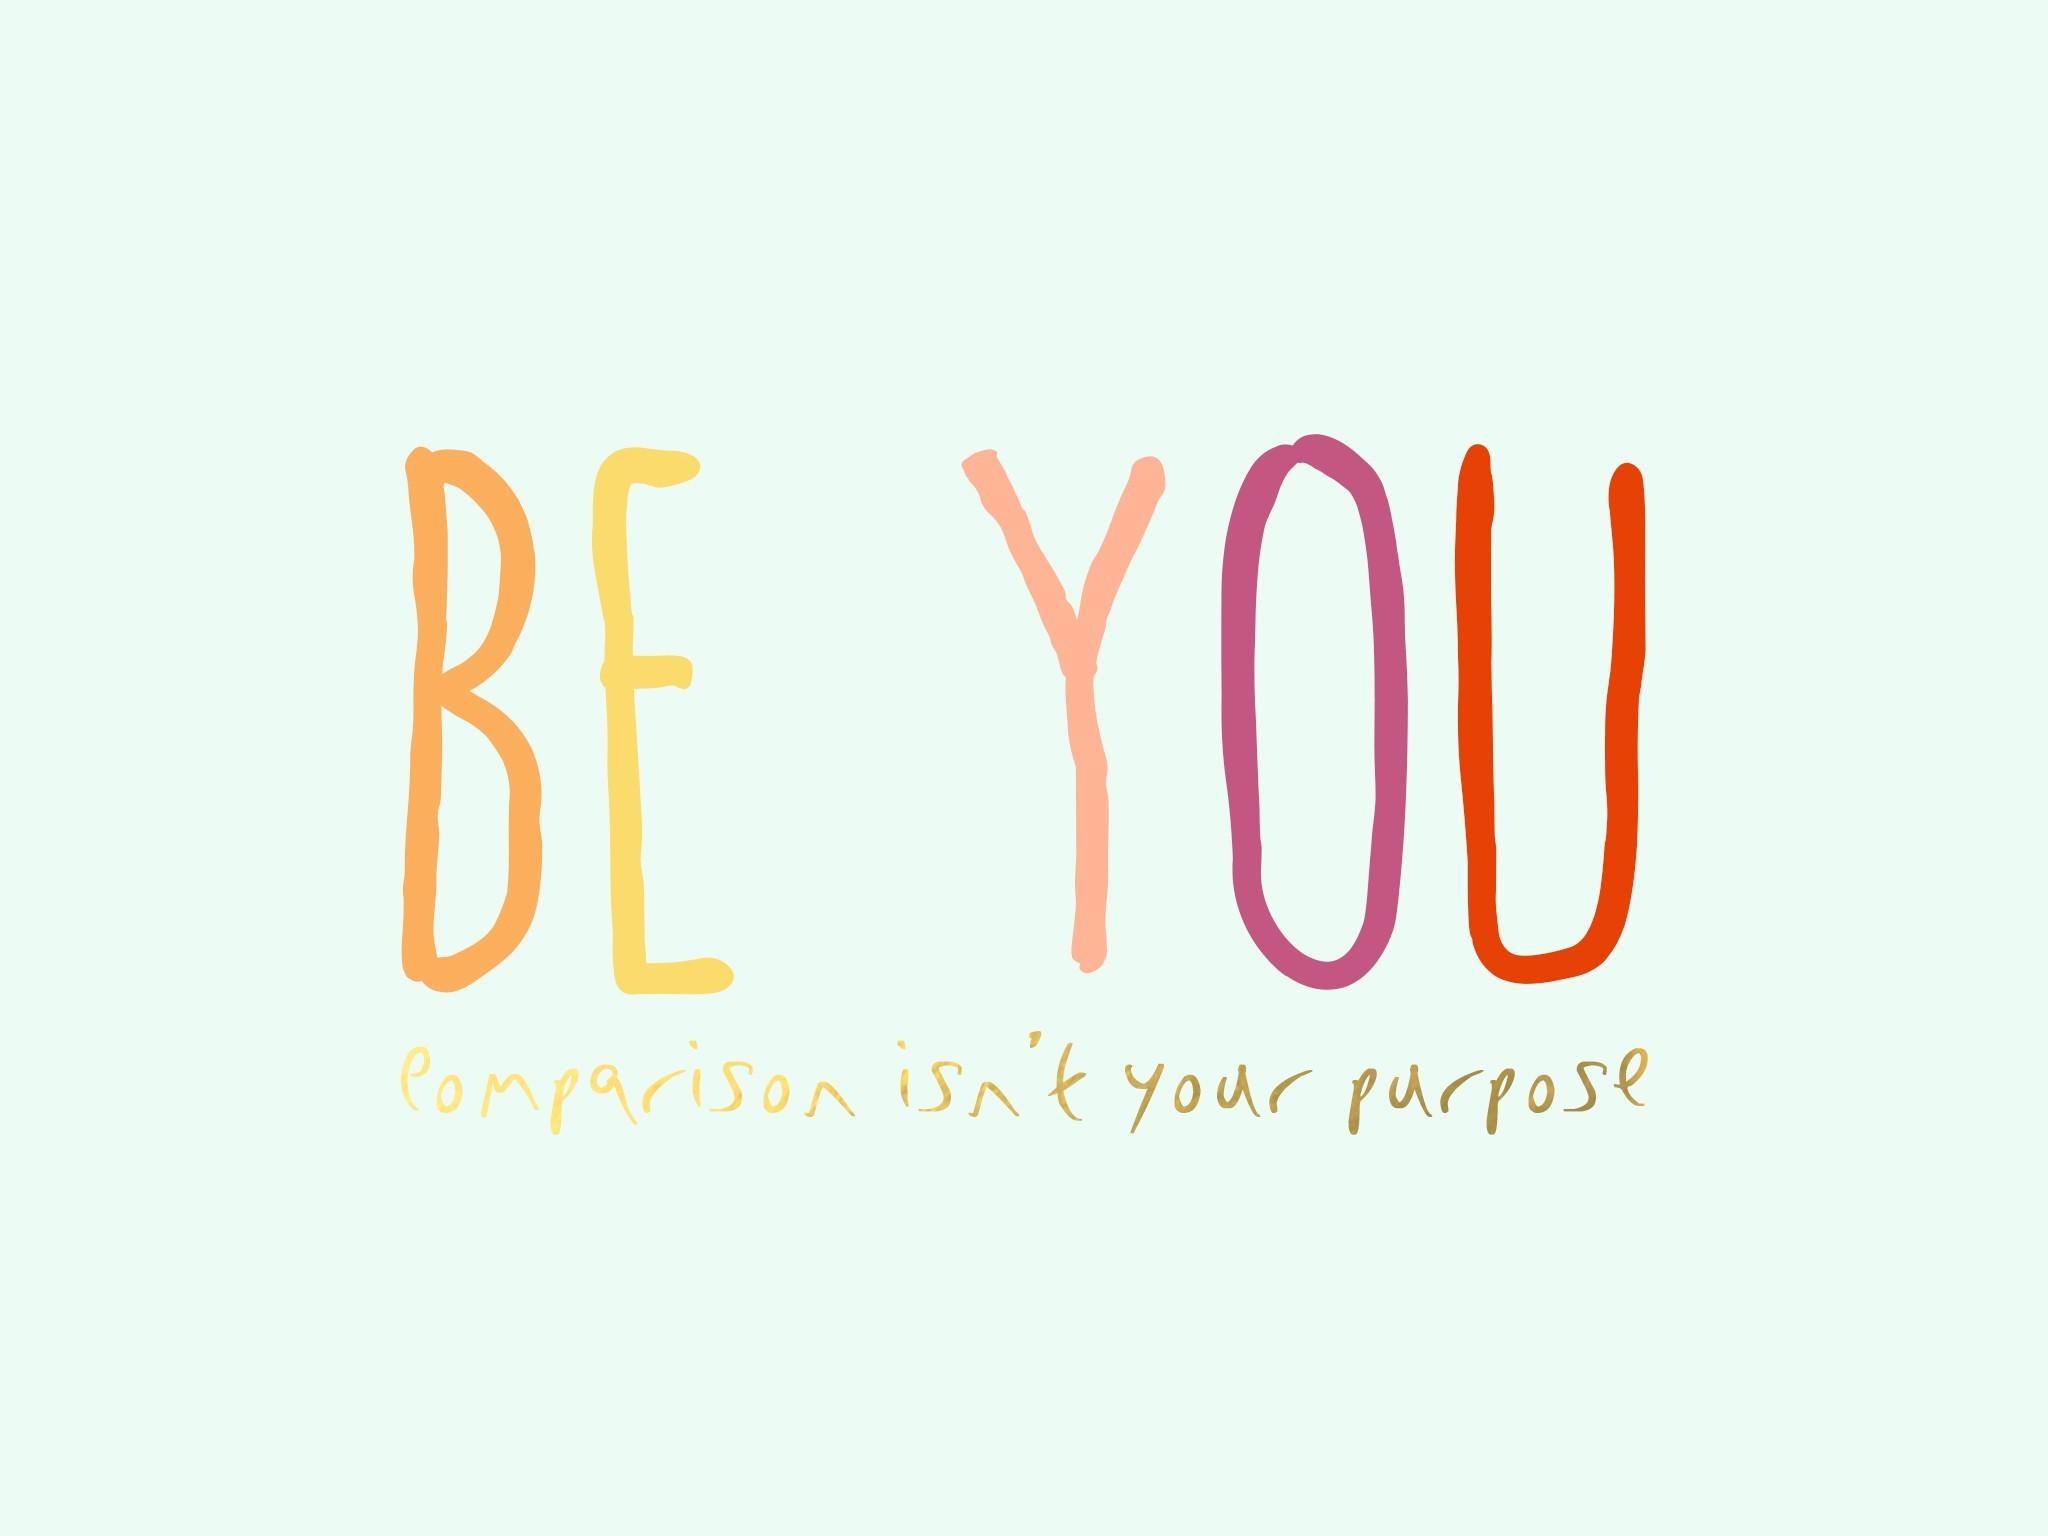 Hustle Quotes Wallpaper Be You Comparison Isn T Your Purpose Fresh Mommy Blog